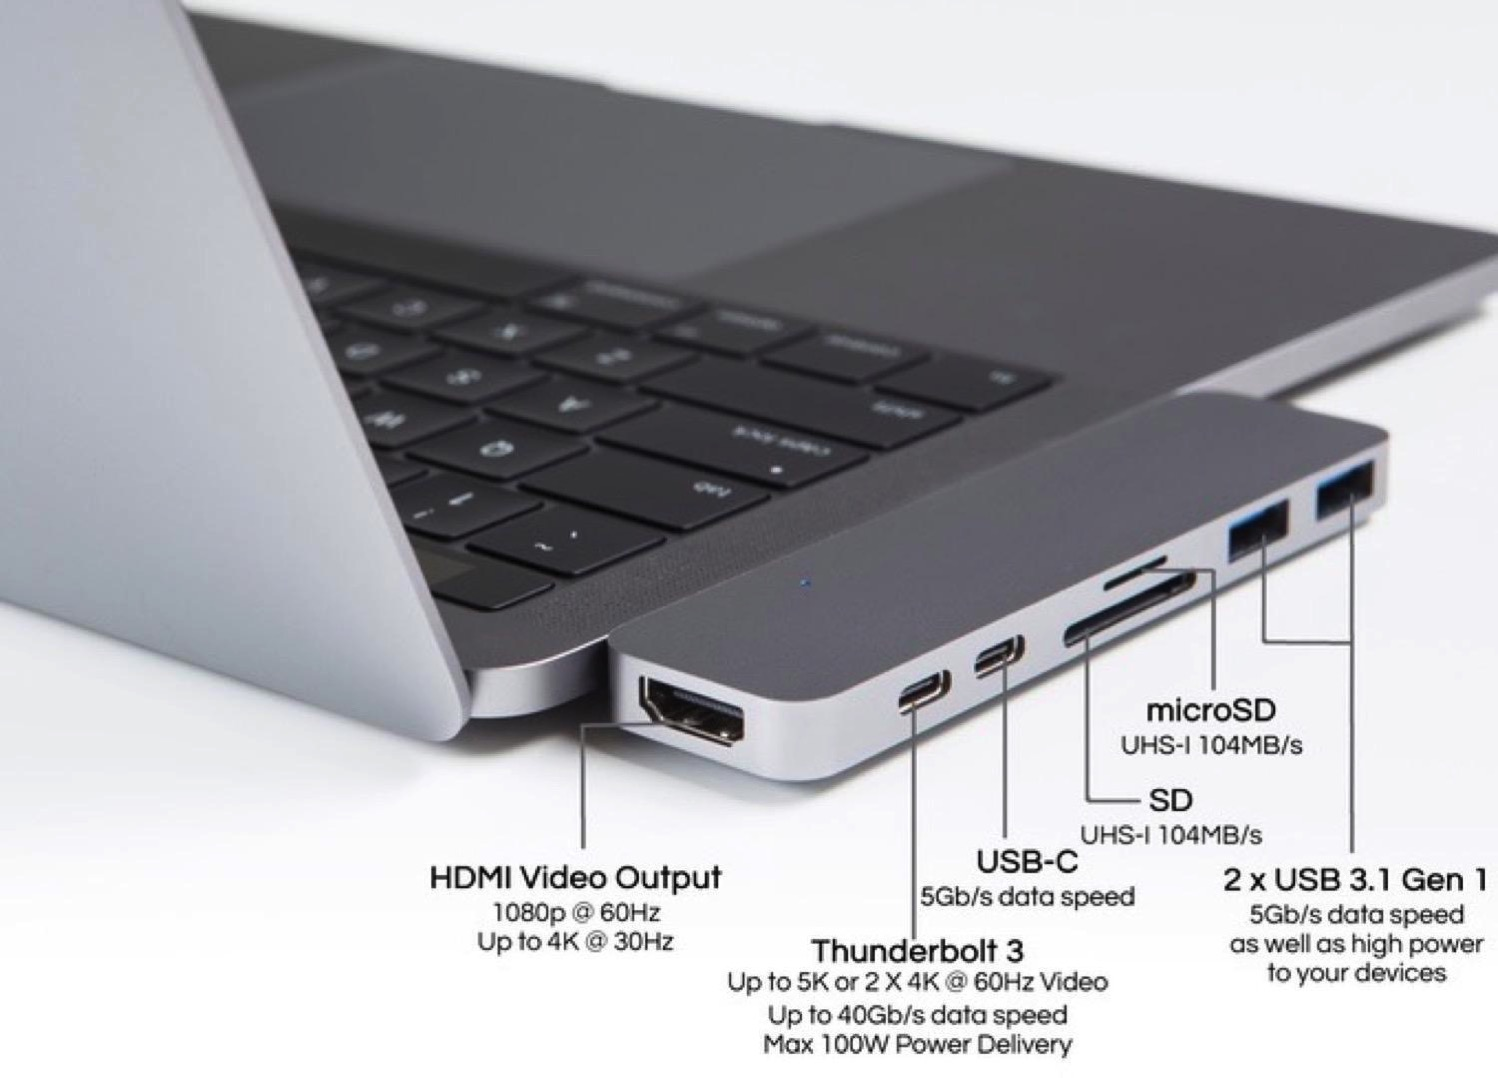 how to open usb drive on macbook pro